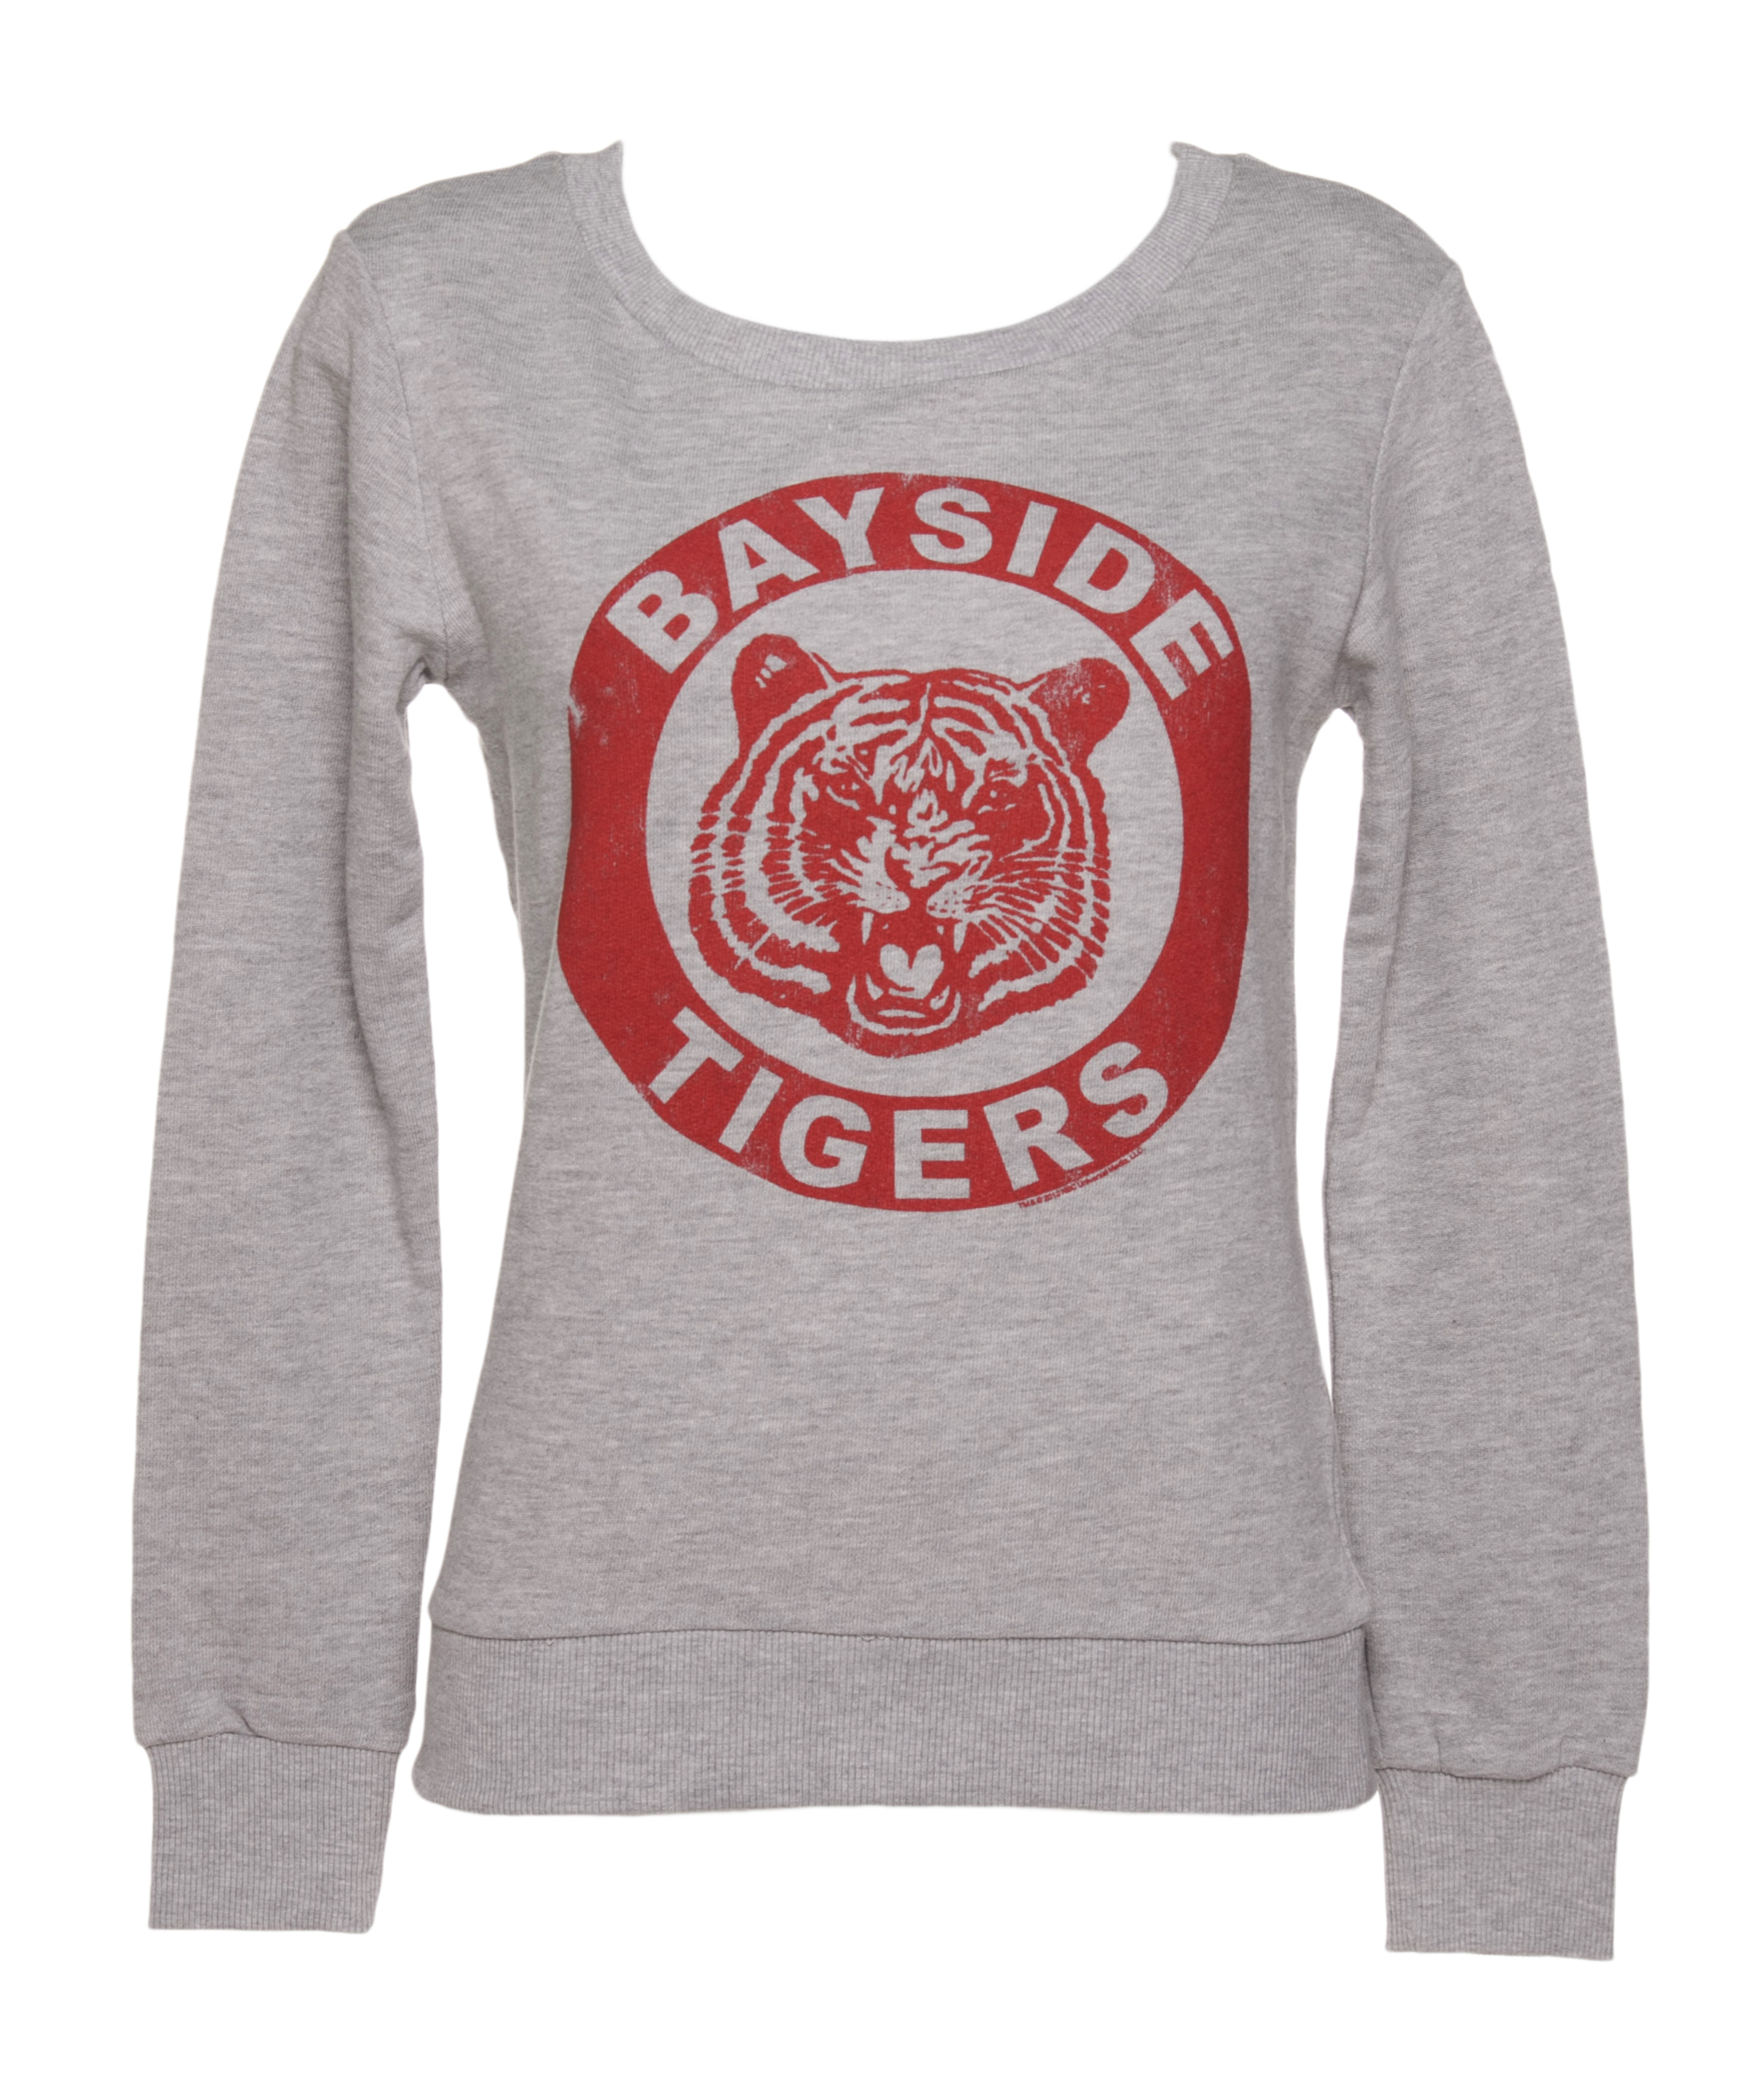 Ladies Grey Saved By The Bell Bayside Tigers Sweater £29.99